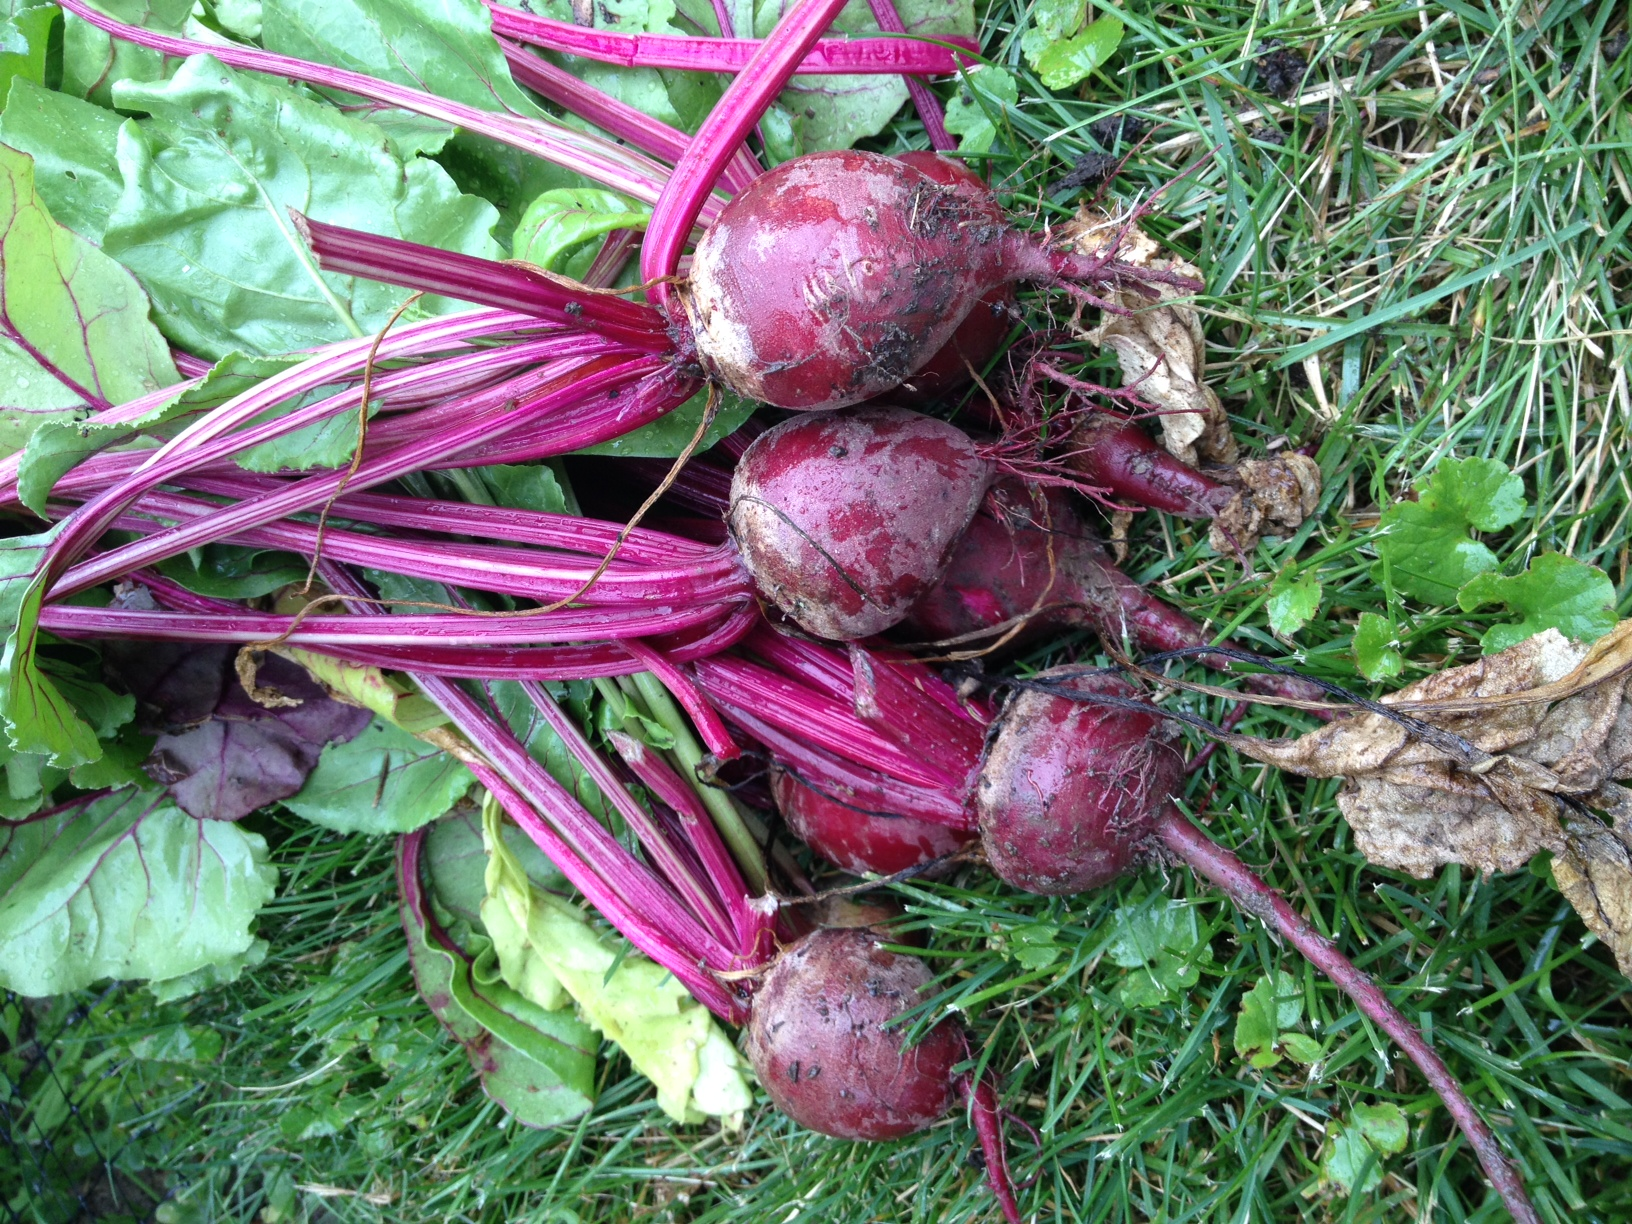 beets from my backyard garden